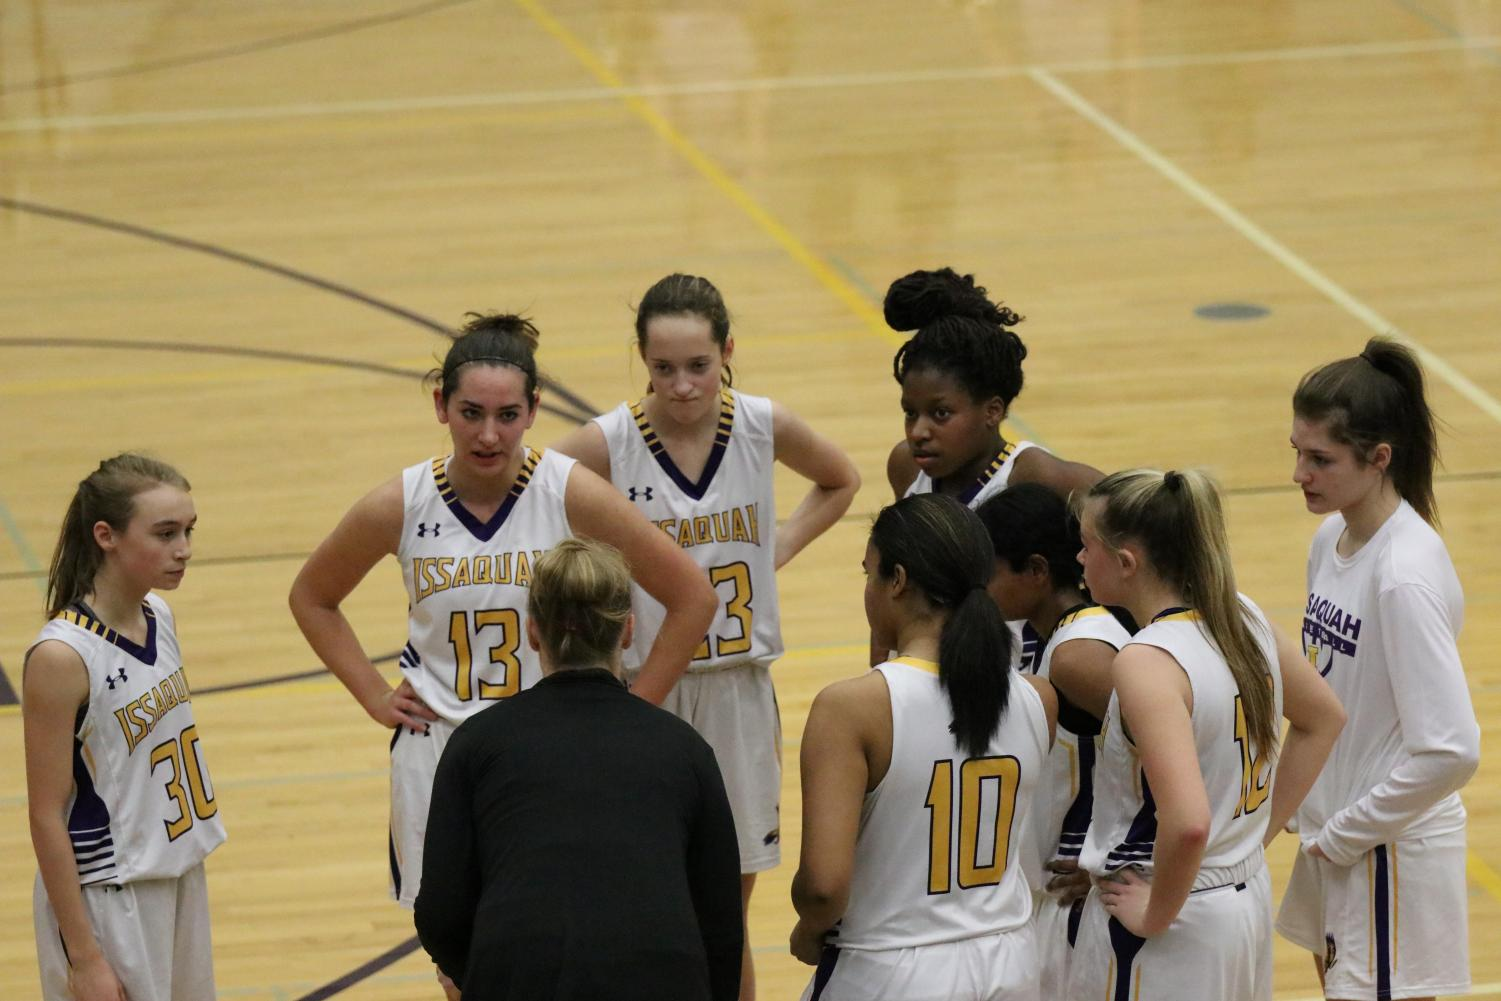 FOCUSED ON THE WIN: The Issaquah girls huddle together to ensure they hold on to their lead to win the game.